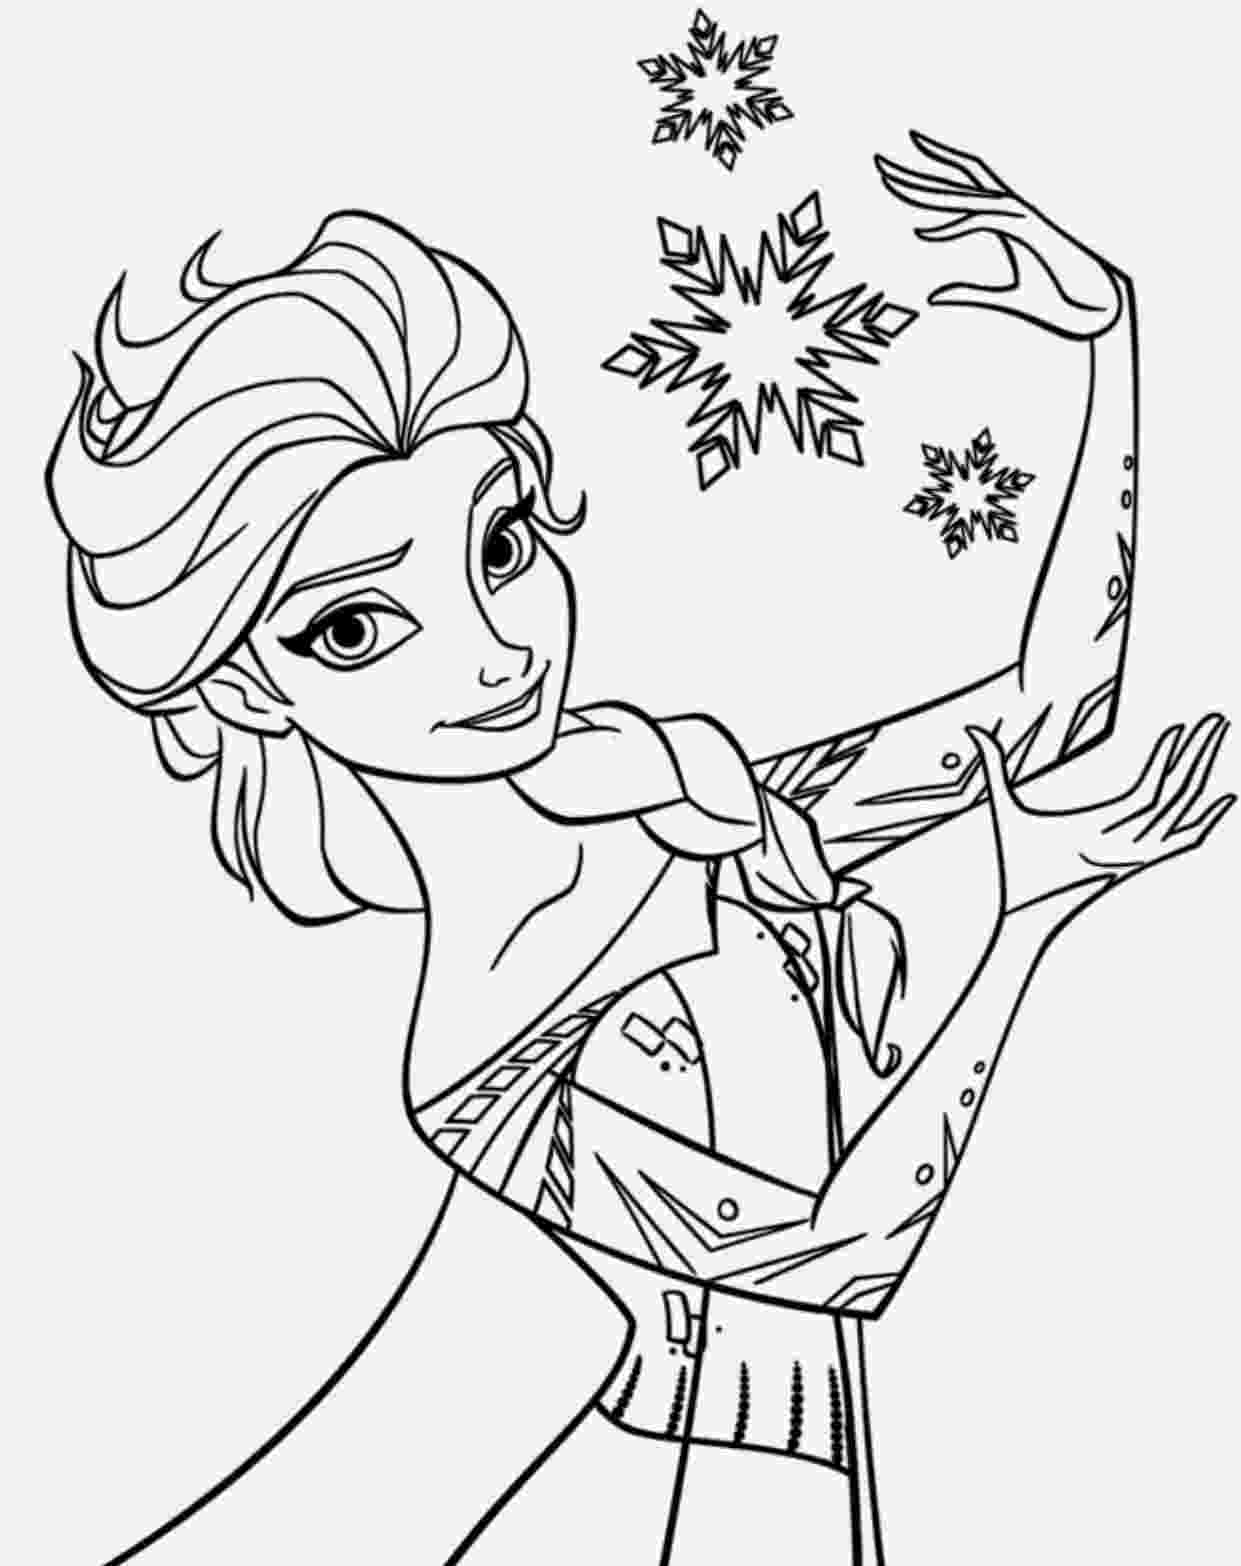 frozen coloring books 15 beautiful disney frozen coloring pages free instant coloring books frozen